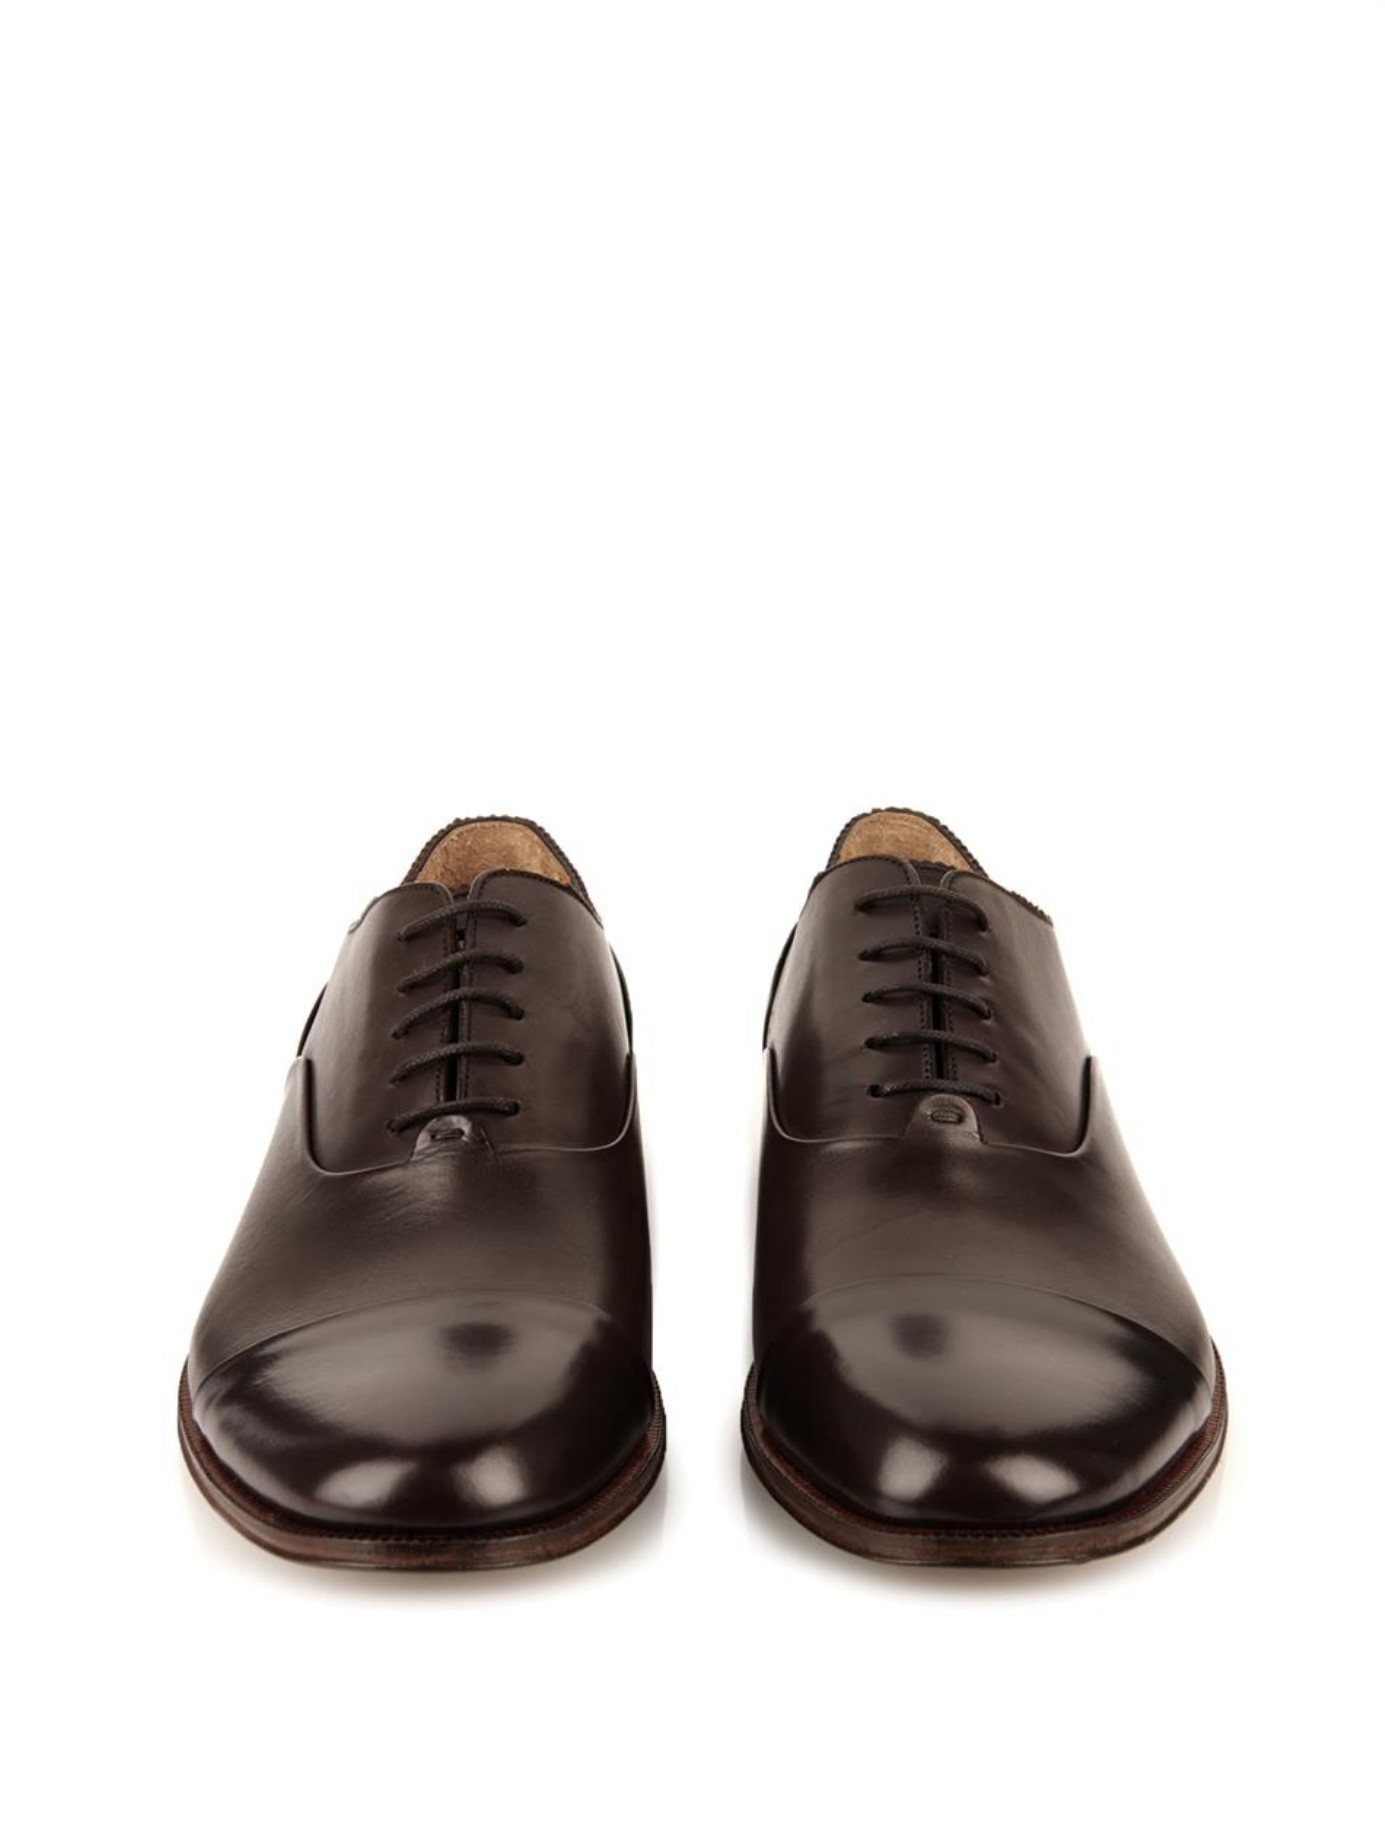 classic oxford shoes - Black Paul Smith TY9uo